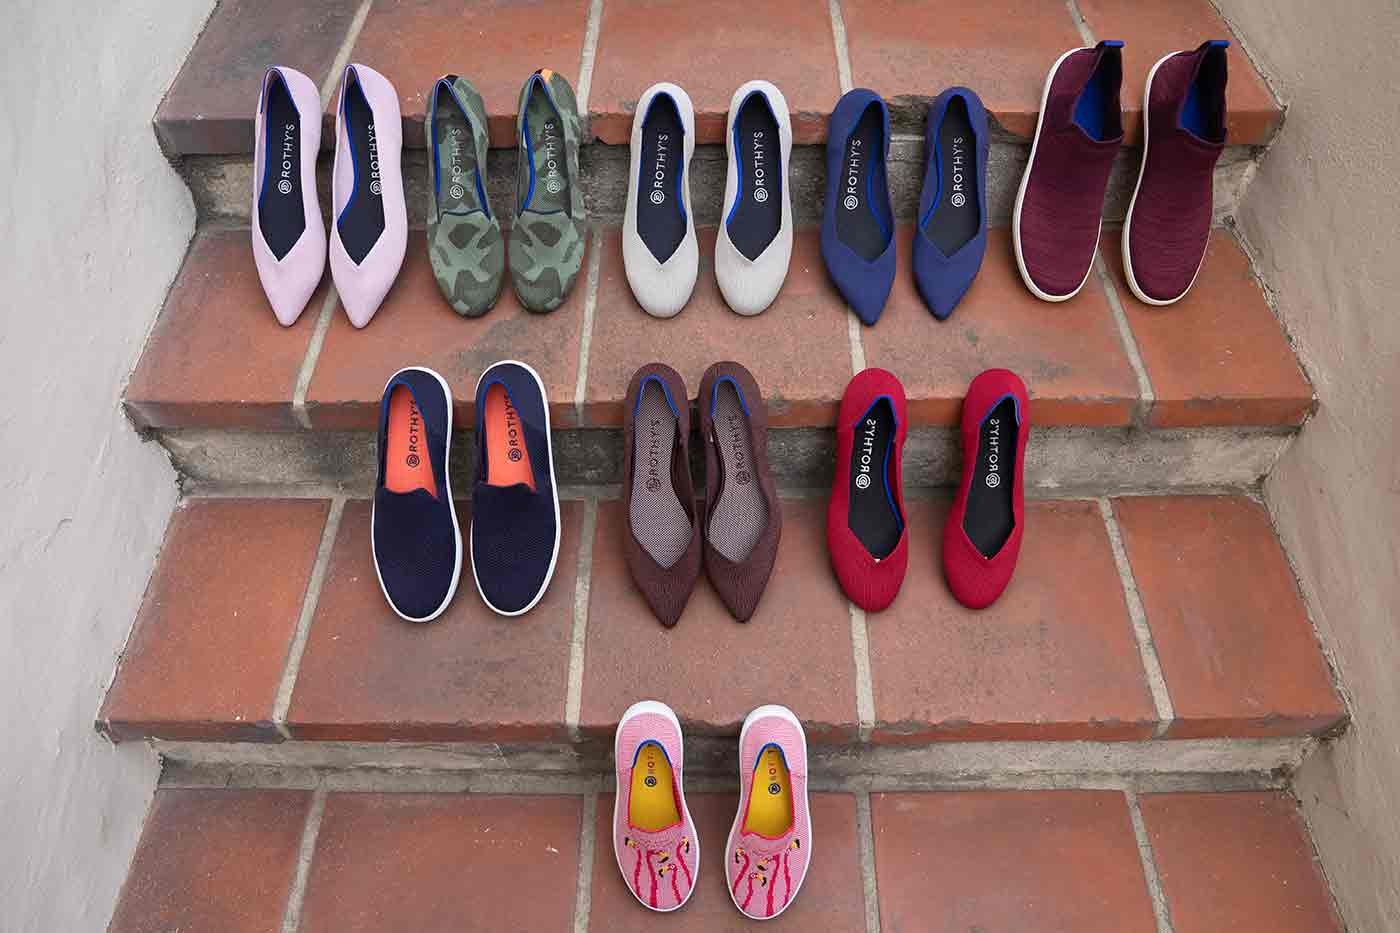 Rothy's shoes made of recycled bottles in a range of colors and style from petal pink to olive flax to truffle python and a children's pink flamingo